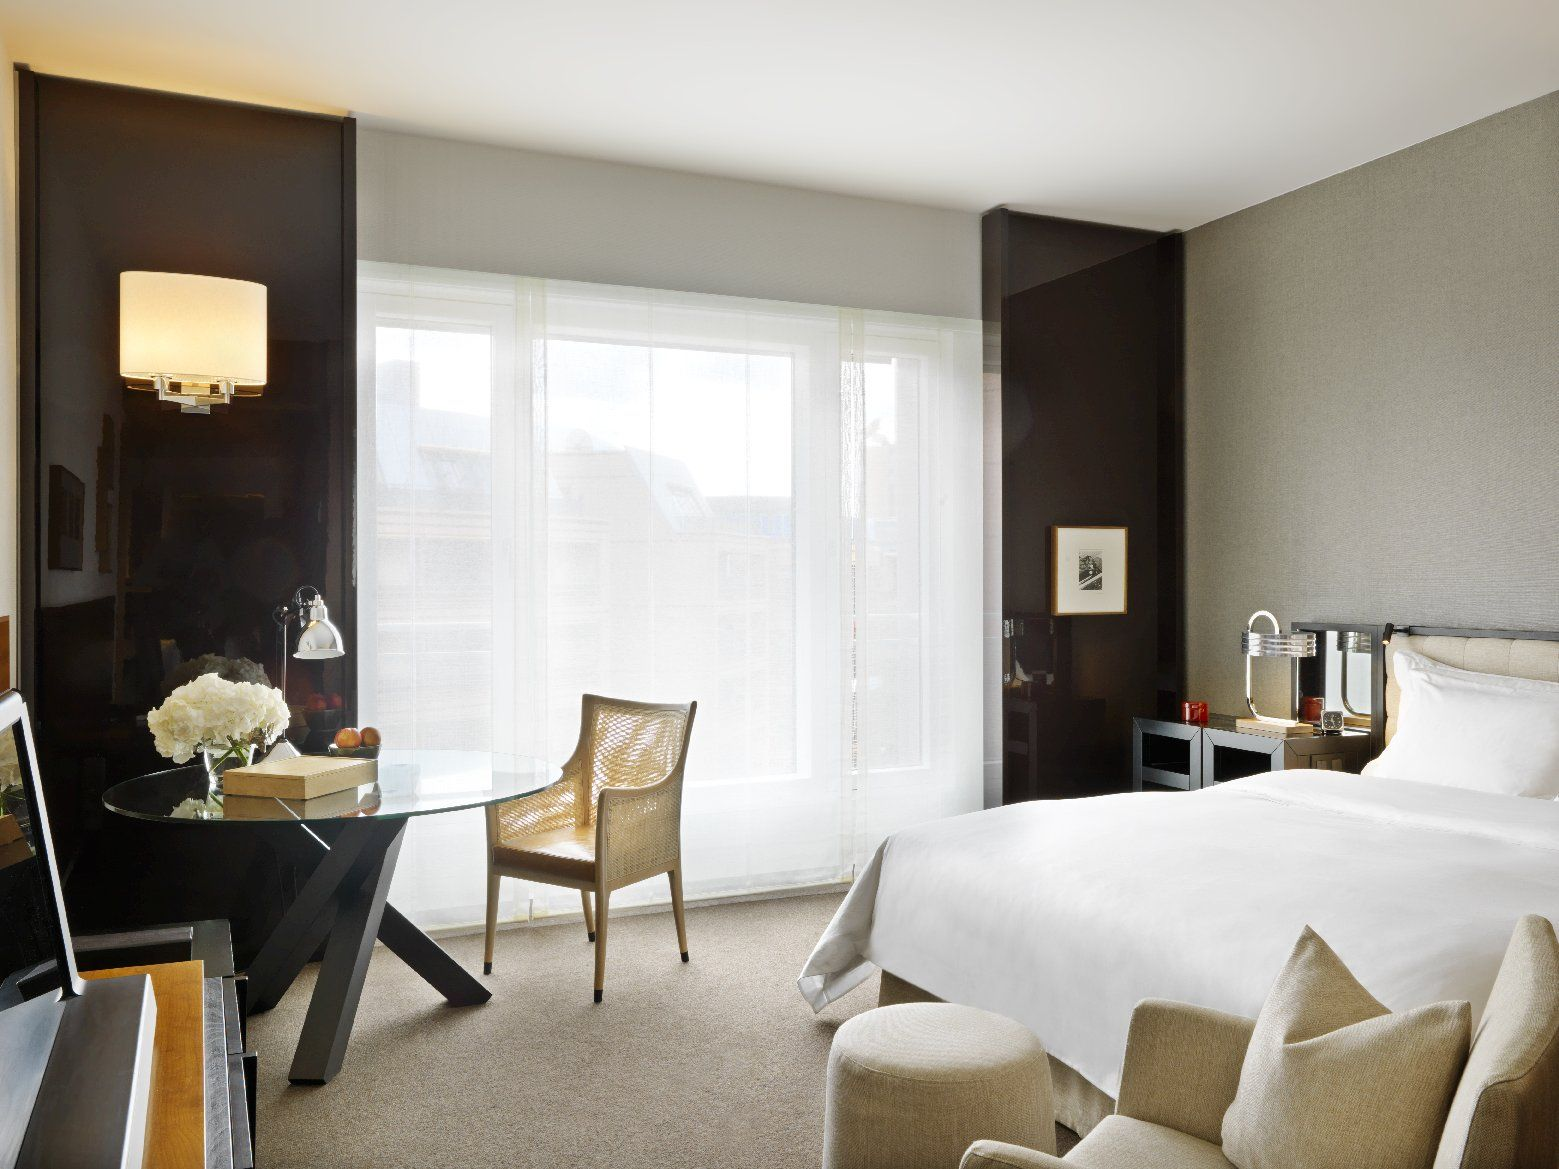 Exclusive comfort awaits you in modern guestrooms, equipped with the latest amenities, impressive marble bathrooms and spacious living and working areas. Grand King room at the Grand Hyatt Berlin.